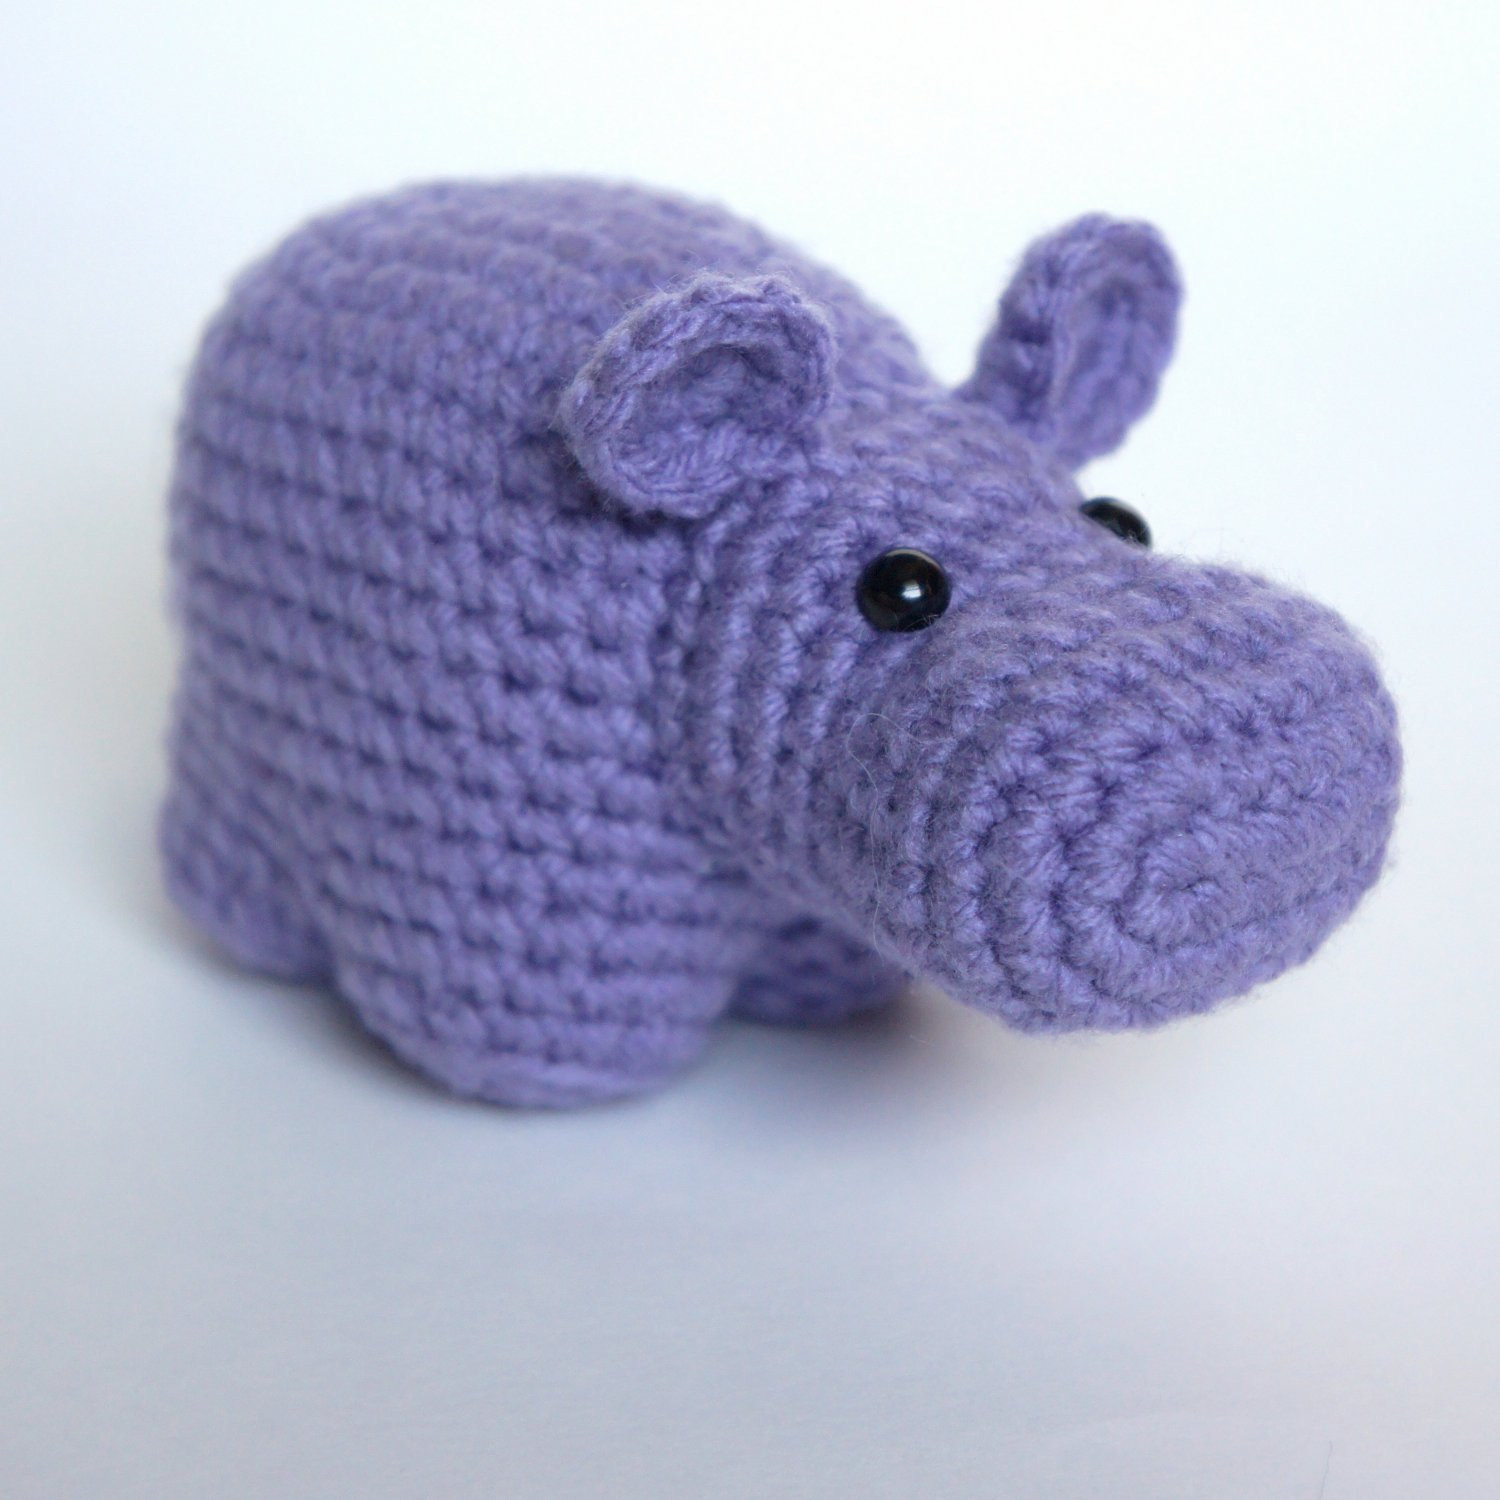 Crochet Hippo Pattern Free Beautiful Amigurumi Crochet Hippo Pattern Of Awesome 40 Pics Crochet Hippo Pattern Free